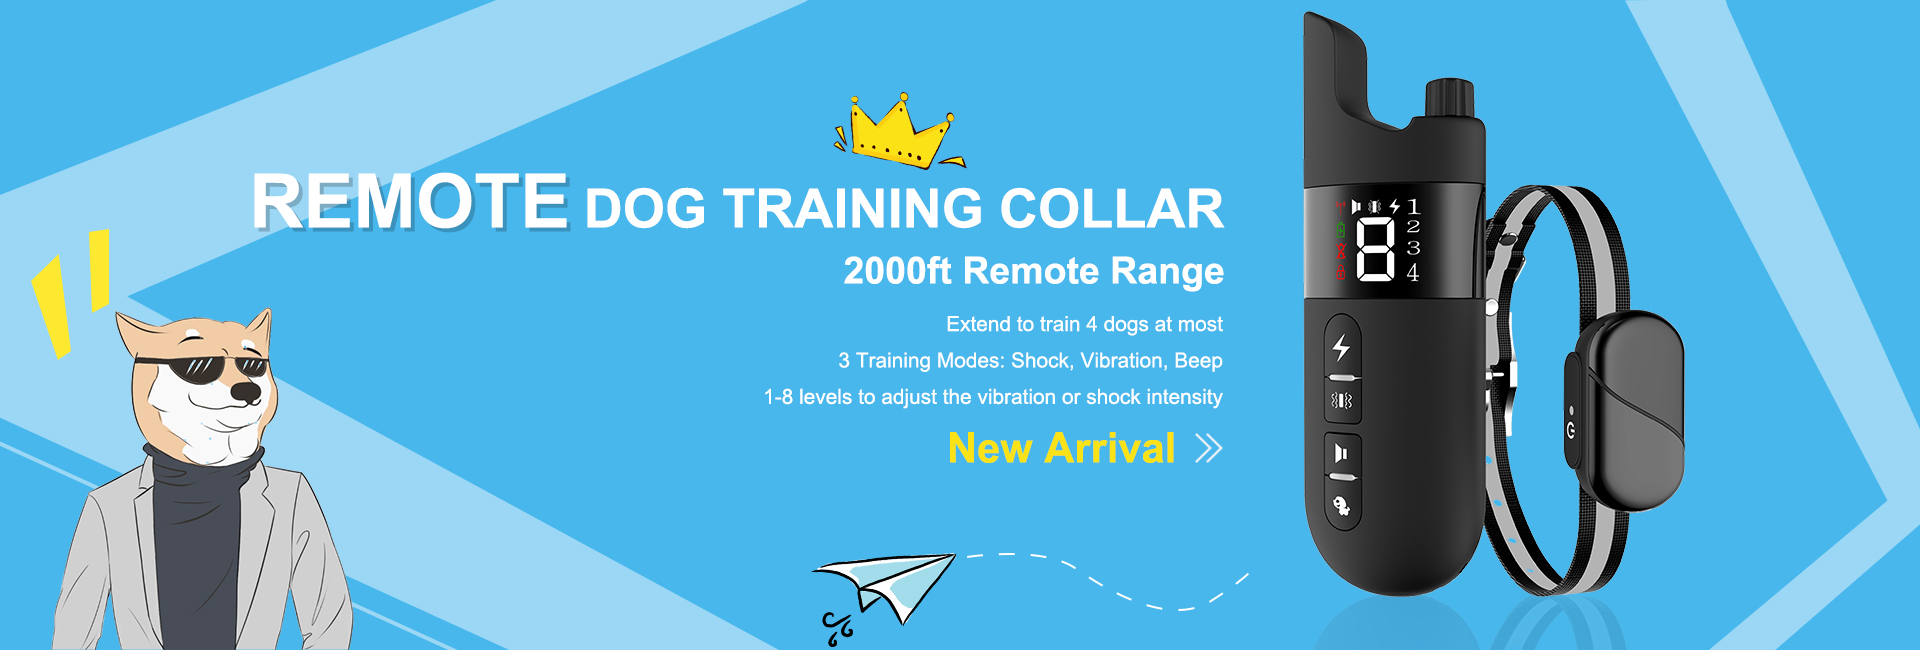 New Product USB Rechargeable Remote Dog Training Collar Waterproof